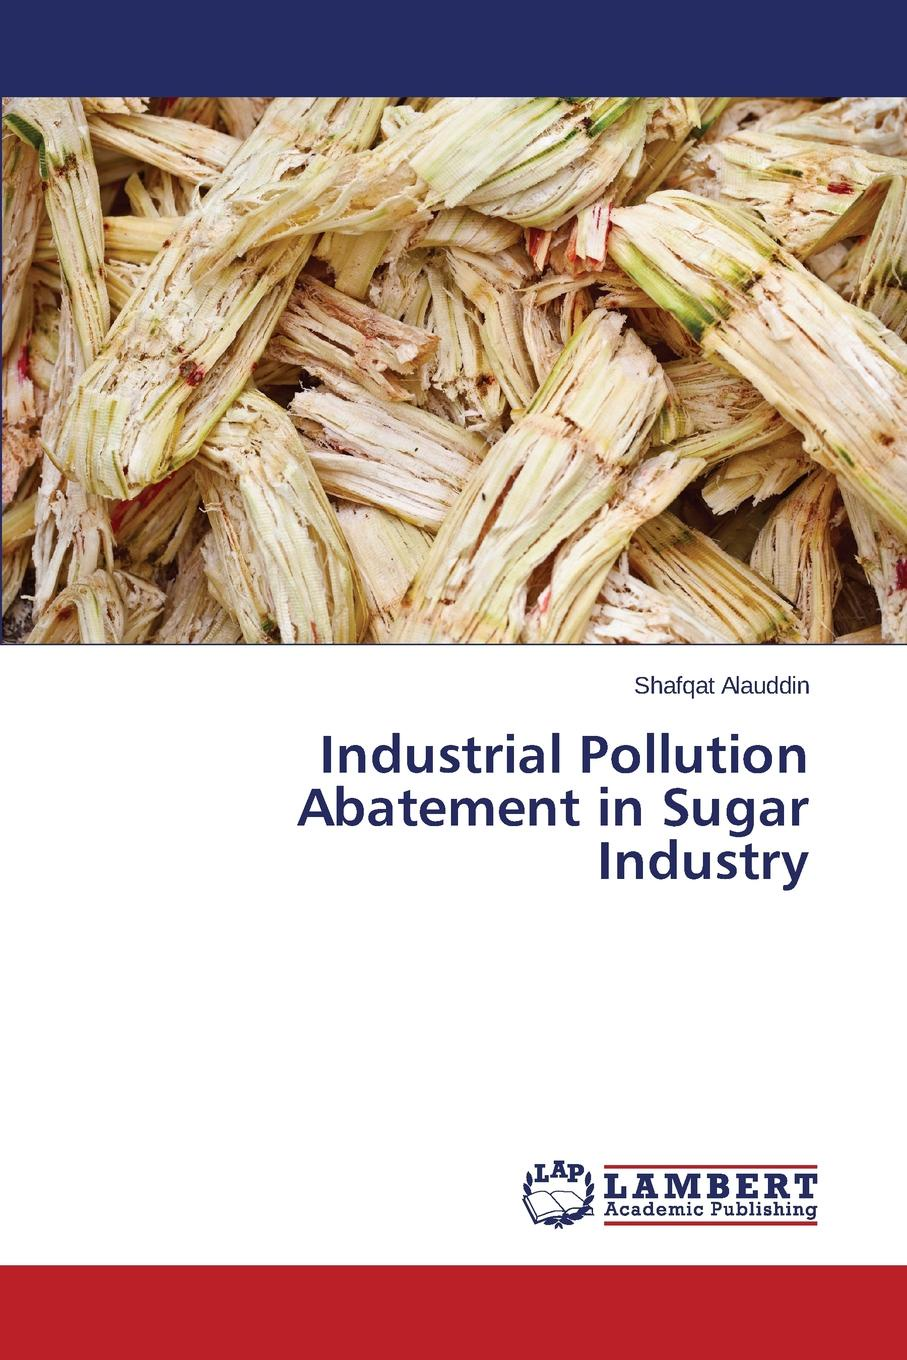 Alauddin Shafqat Industrial Pollution Abatement in Sugar Industry mahmudul hasan review of the current legal and institutional mechanisms in relation to the environment pollution control in bangladesh